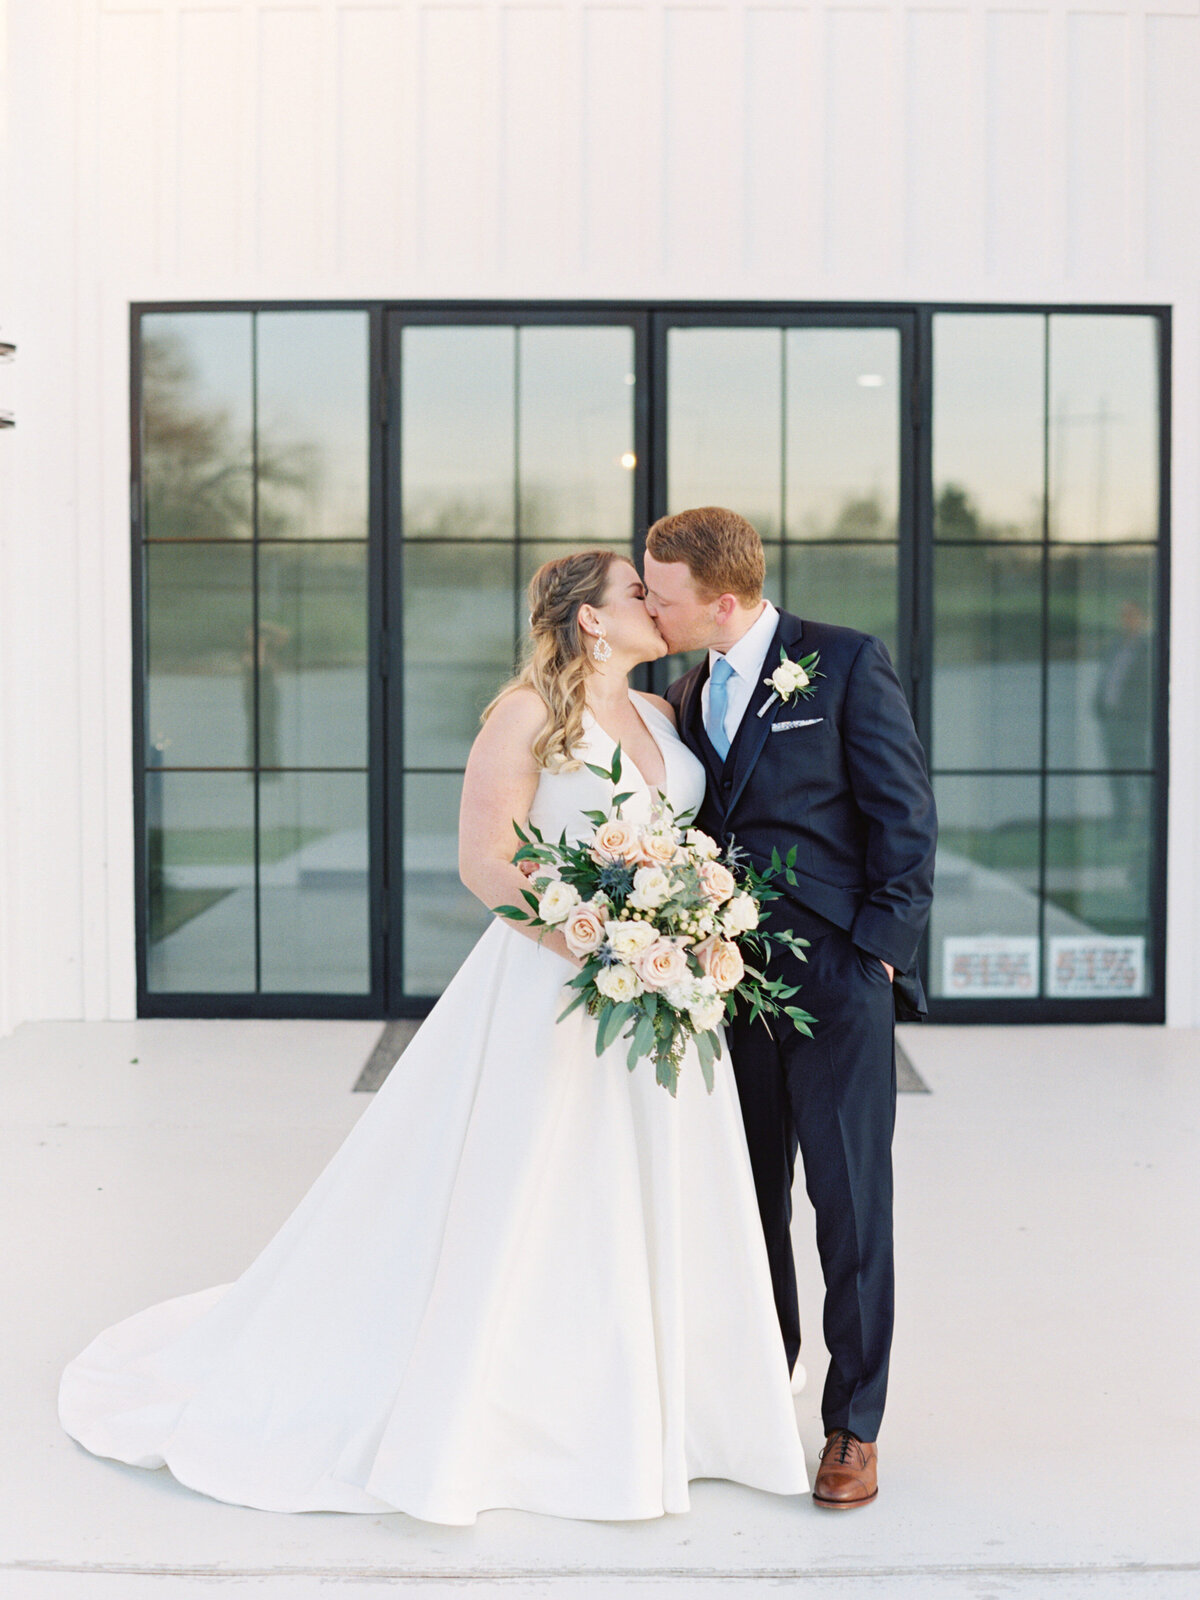 the-farmhouse-wedding-houston-texas-wedding-photographer-mackenzie-reiter-photography-22